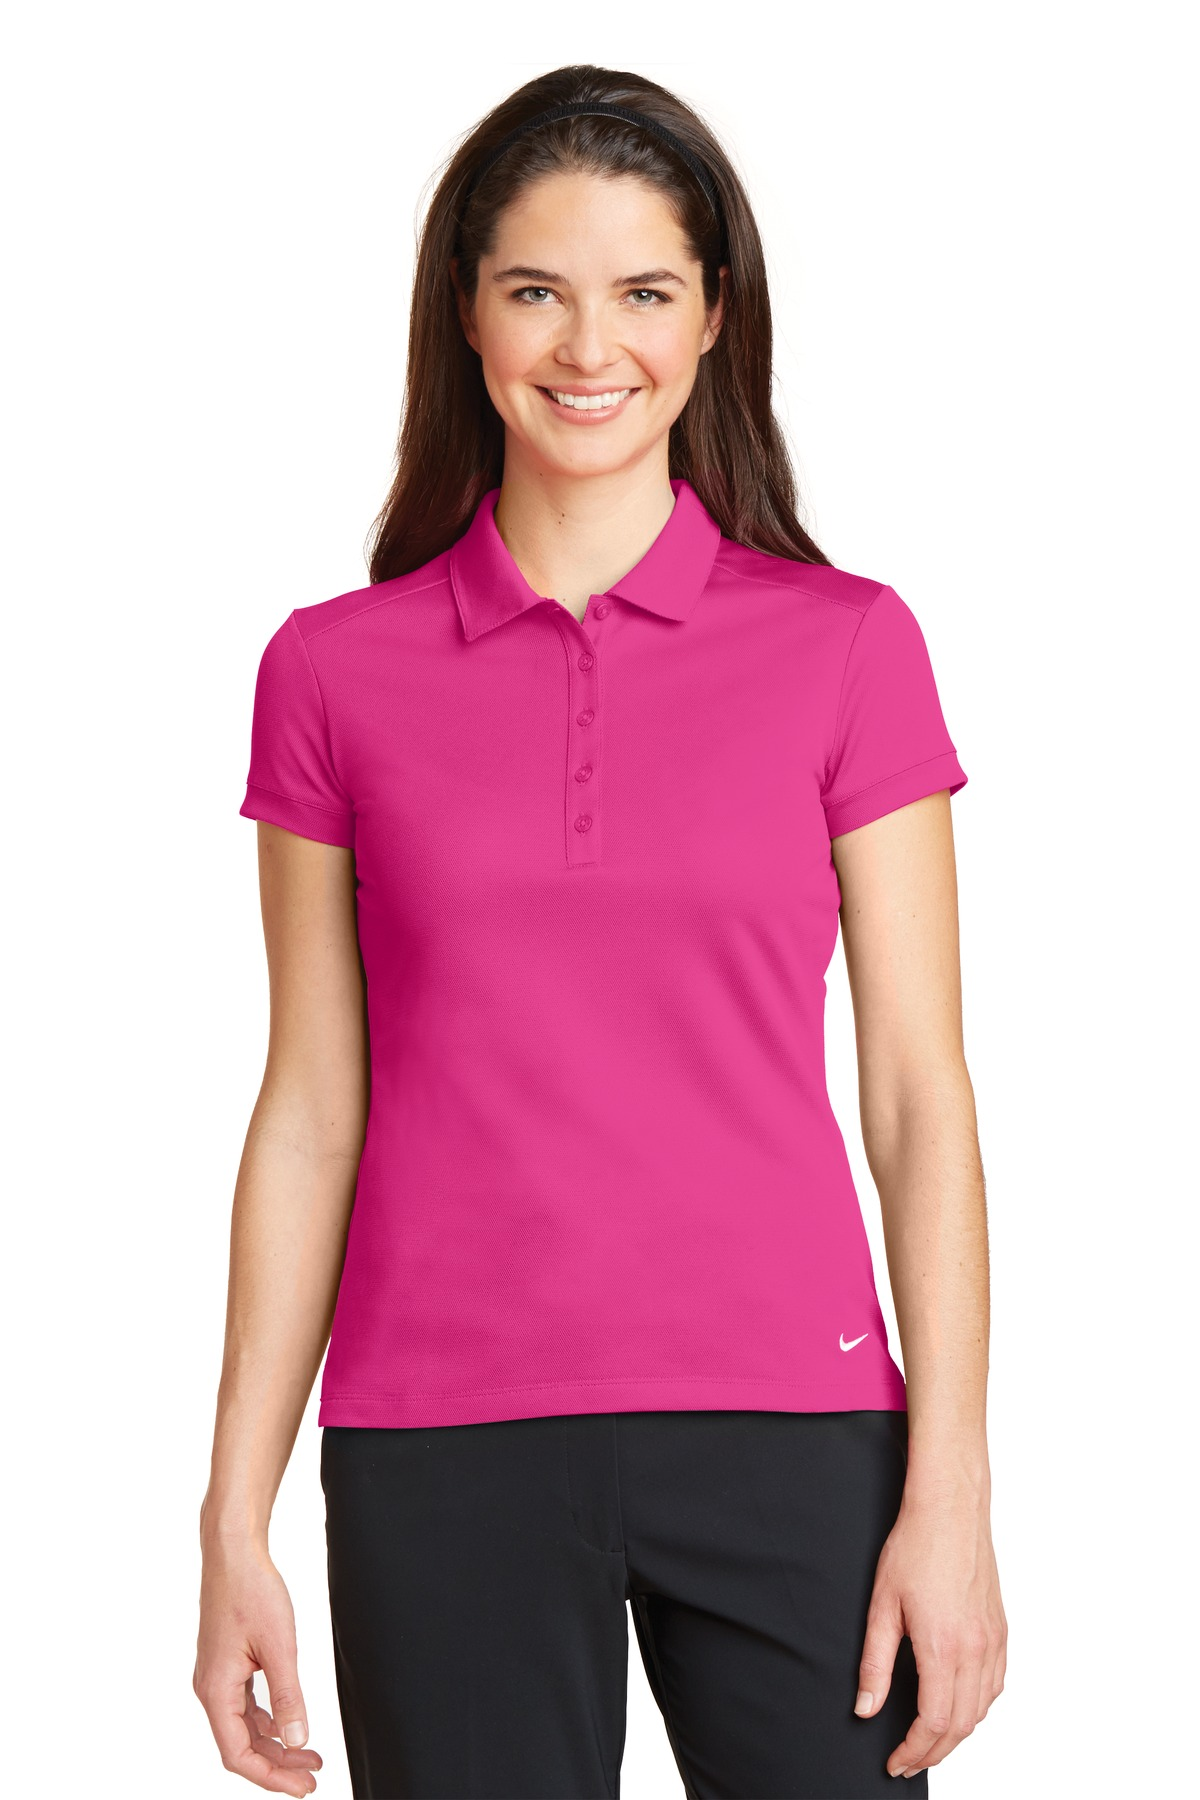 Nike Ladies Dri-FIT Solid Icon Pique Modern Fit Polo.  746100 - Vivid Pink